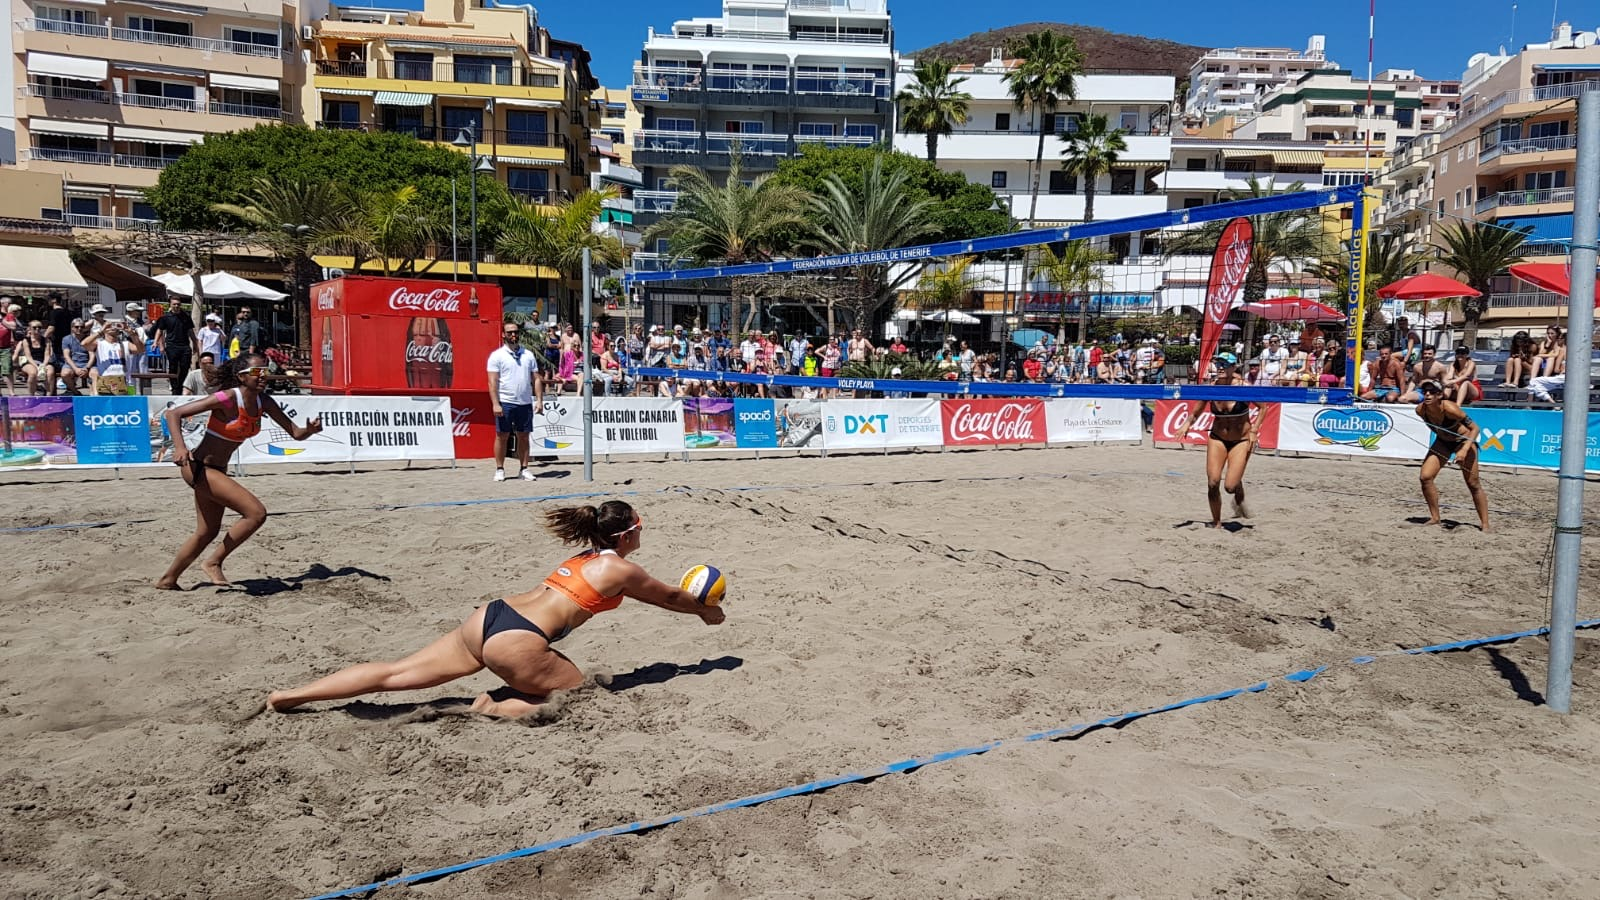 CURSO DE TÉCNICO DE VOLEY PLAYA ¡¡INSCRIBETE¡¡